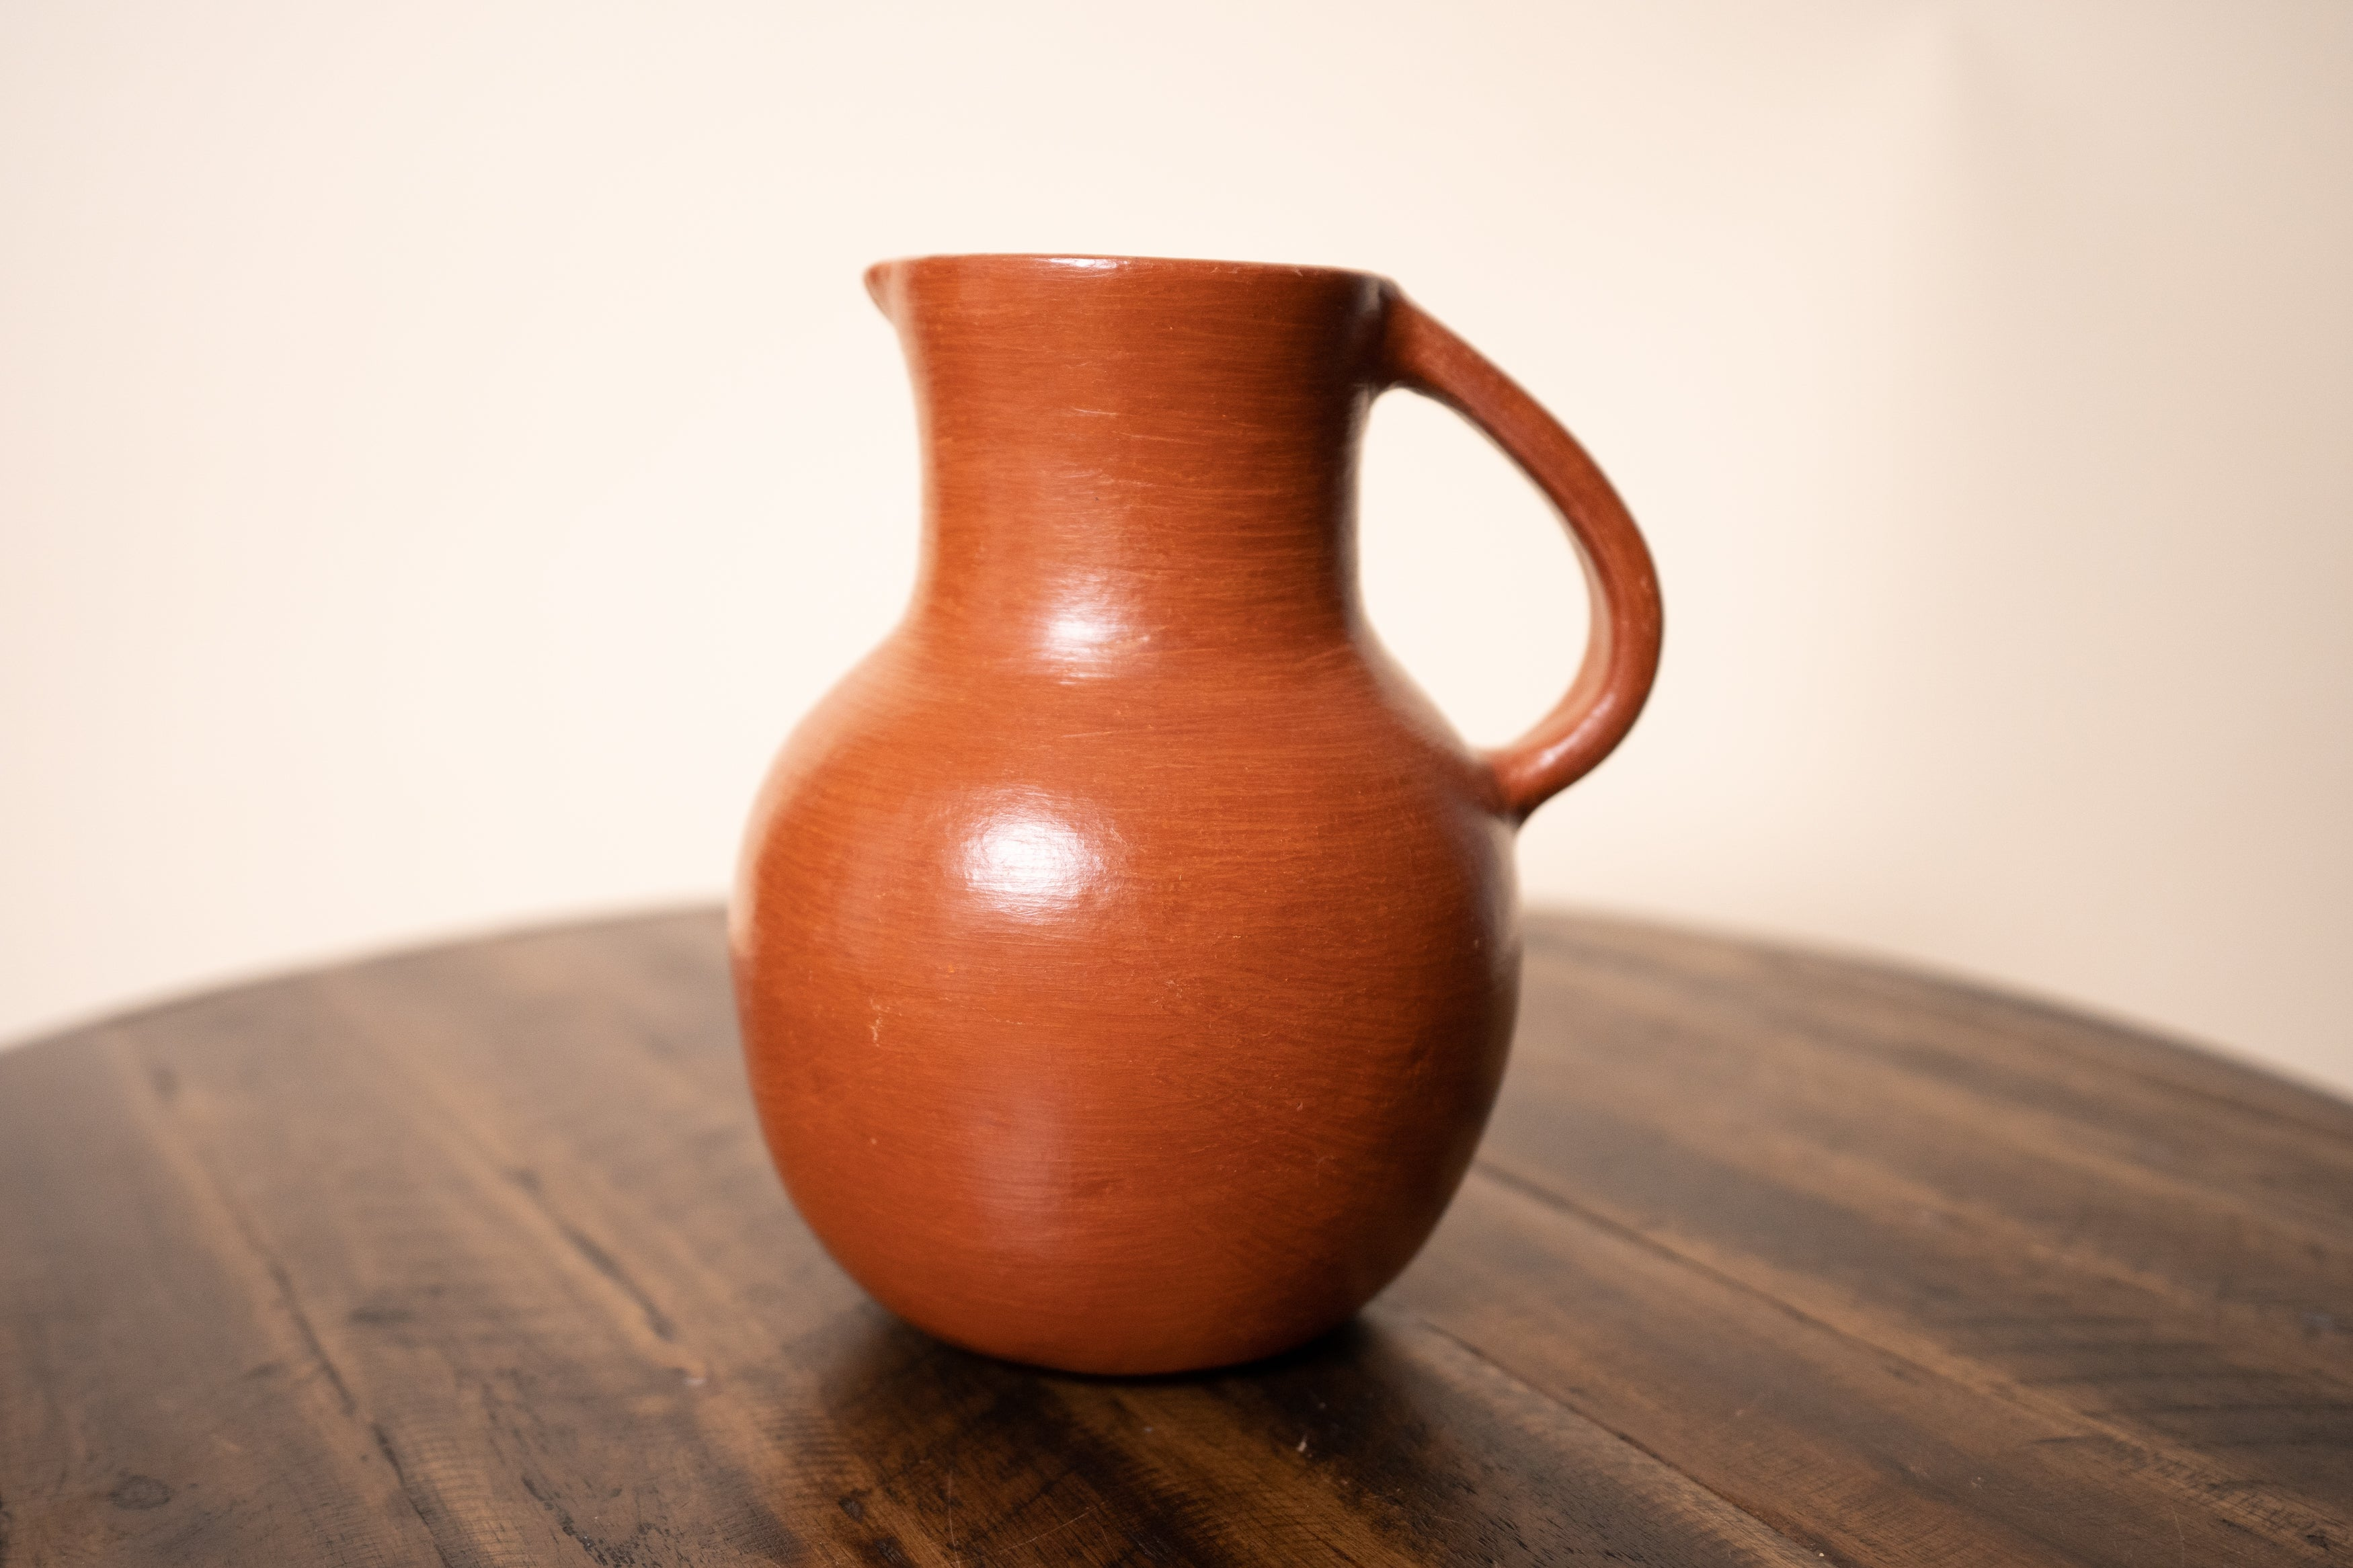 Clay Jugs made by hand in Oaxaca Mexico